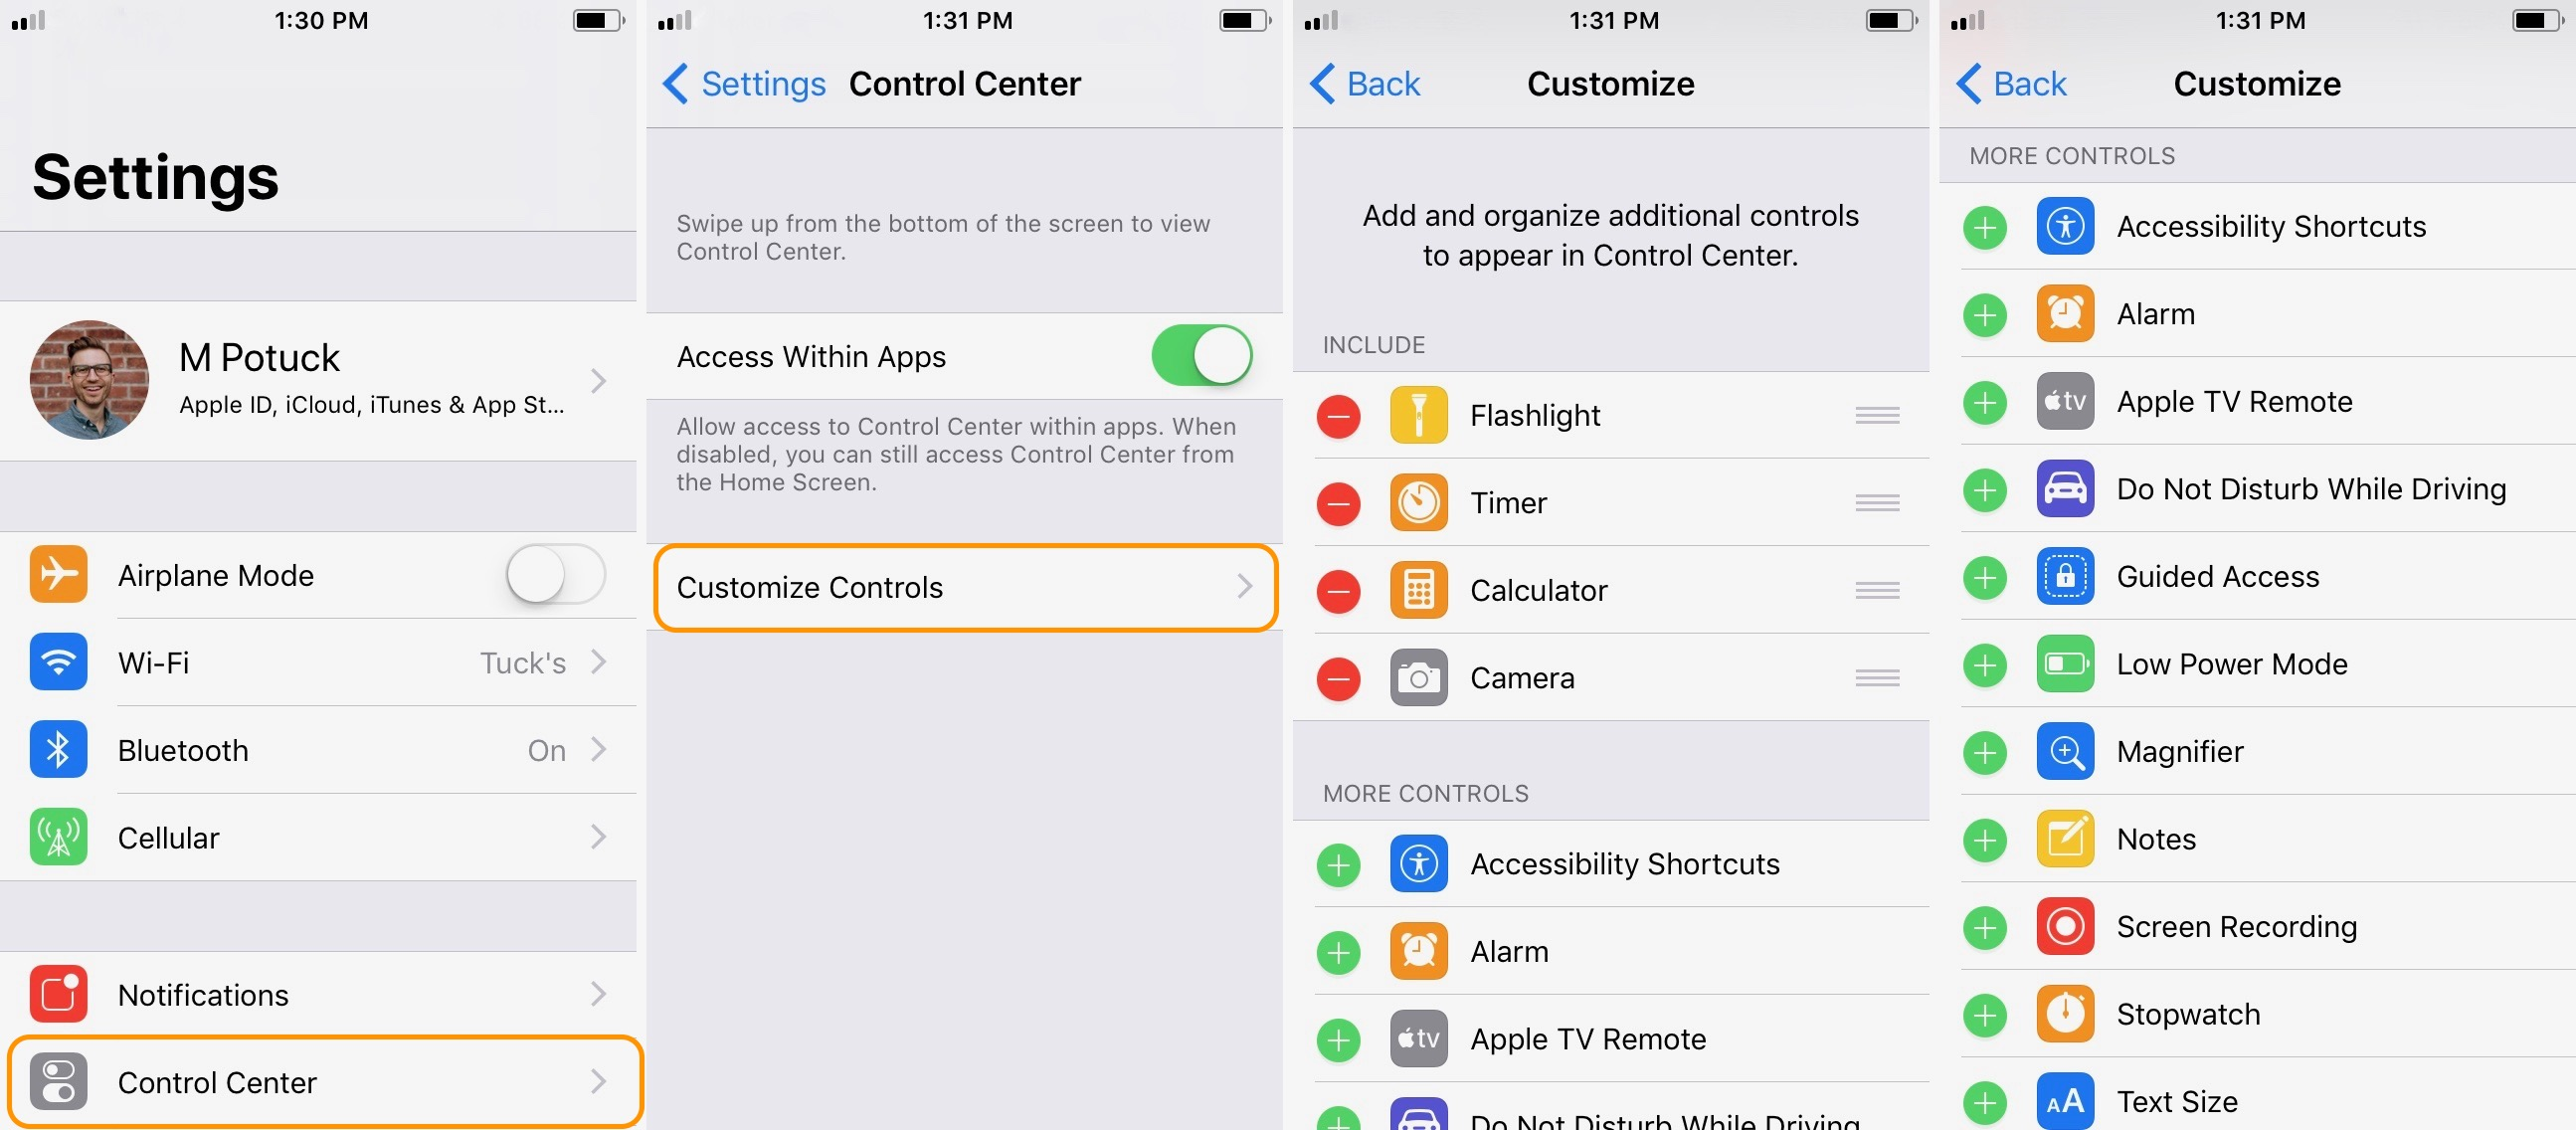 How to change message center number in iphone 5c